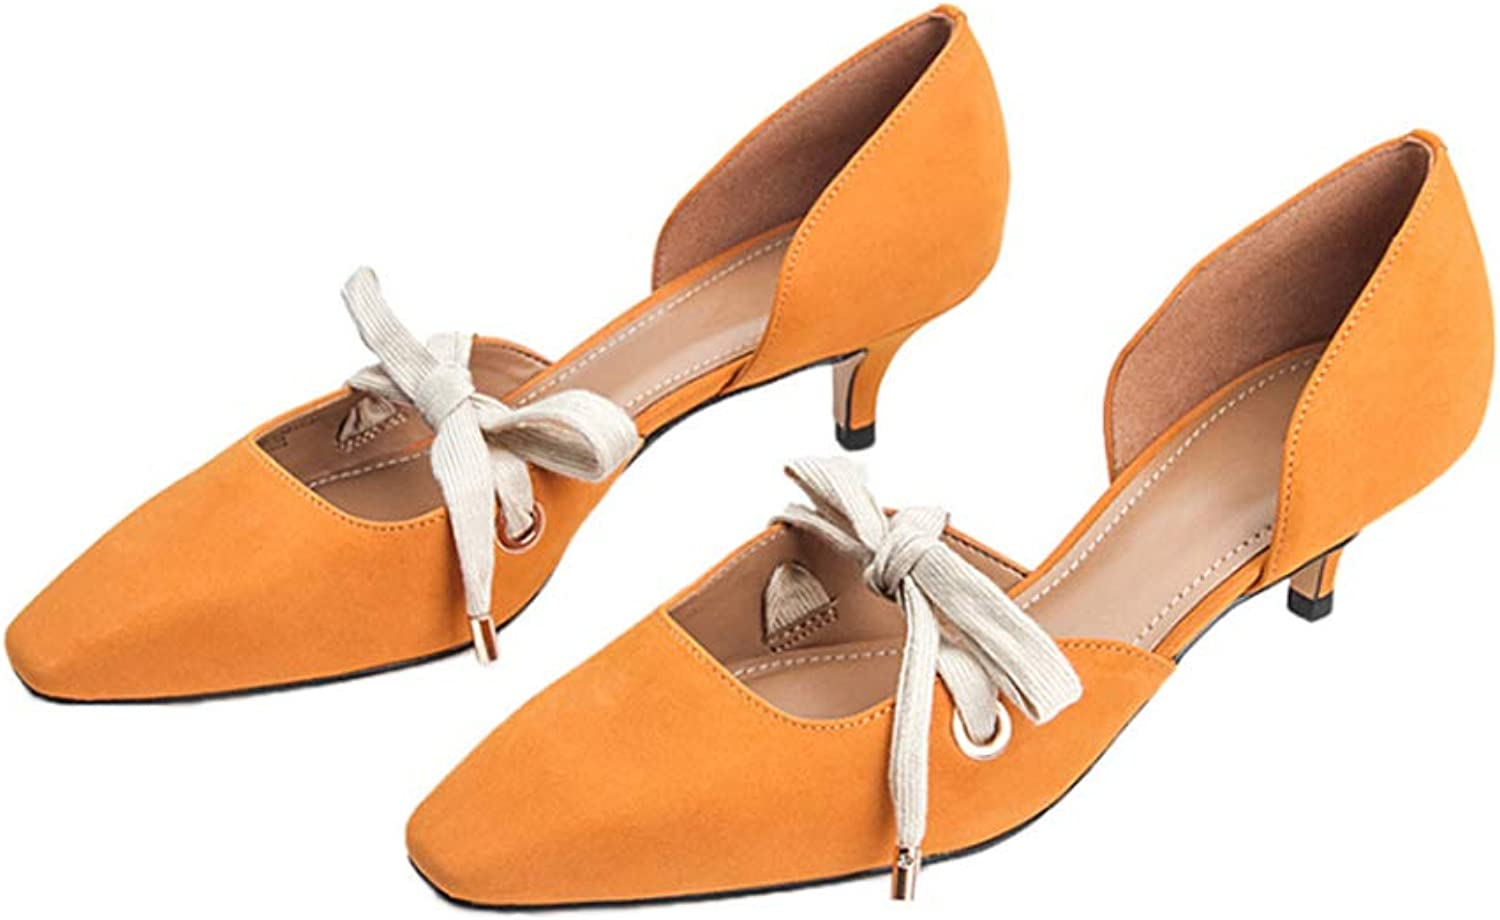 DBQWTY Ladies'Summer Low-Heeled Leather shoes Comfortable Walking Fashion Workplace Leather shoes